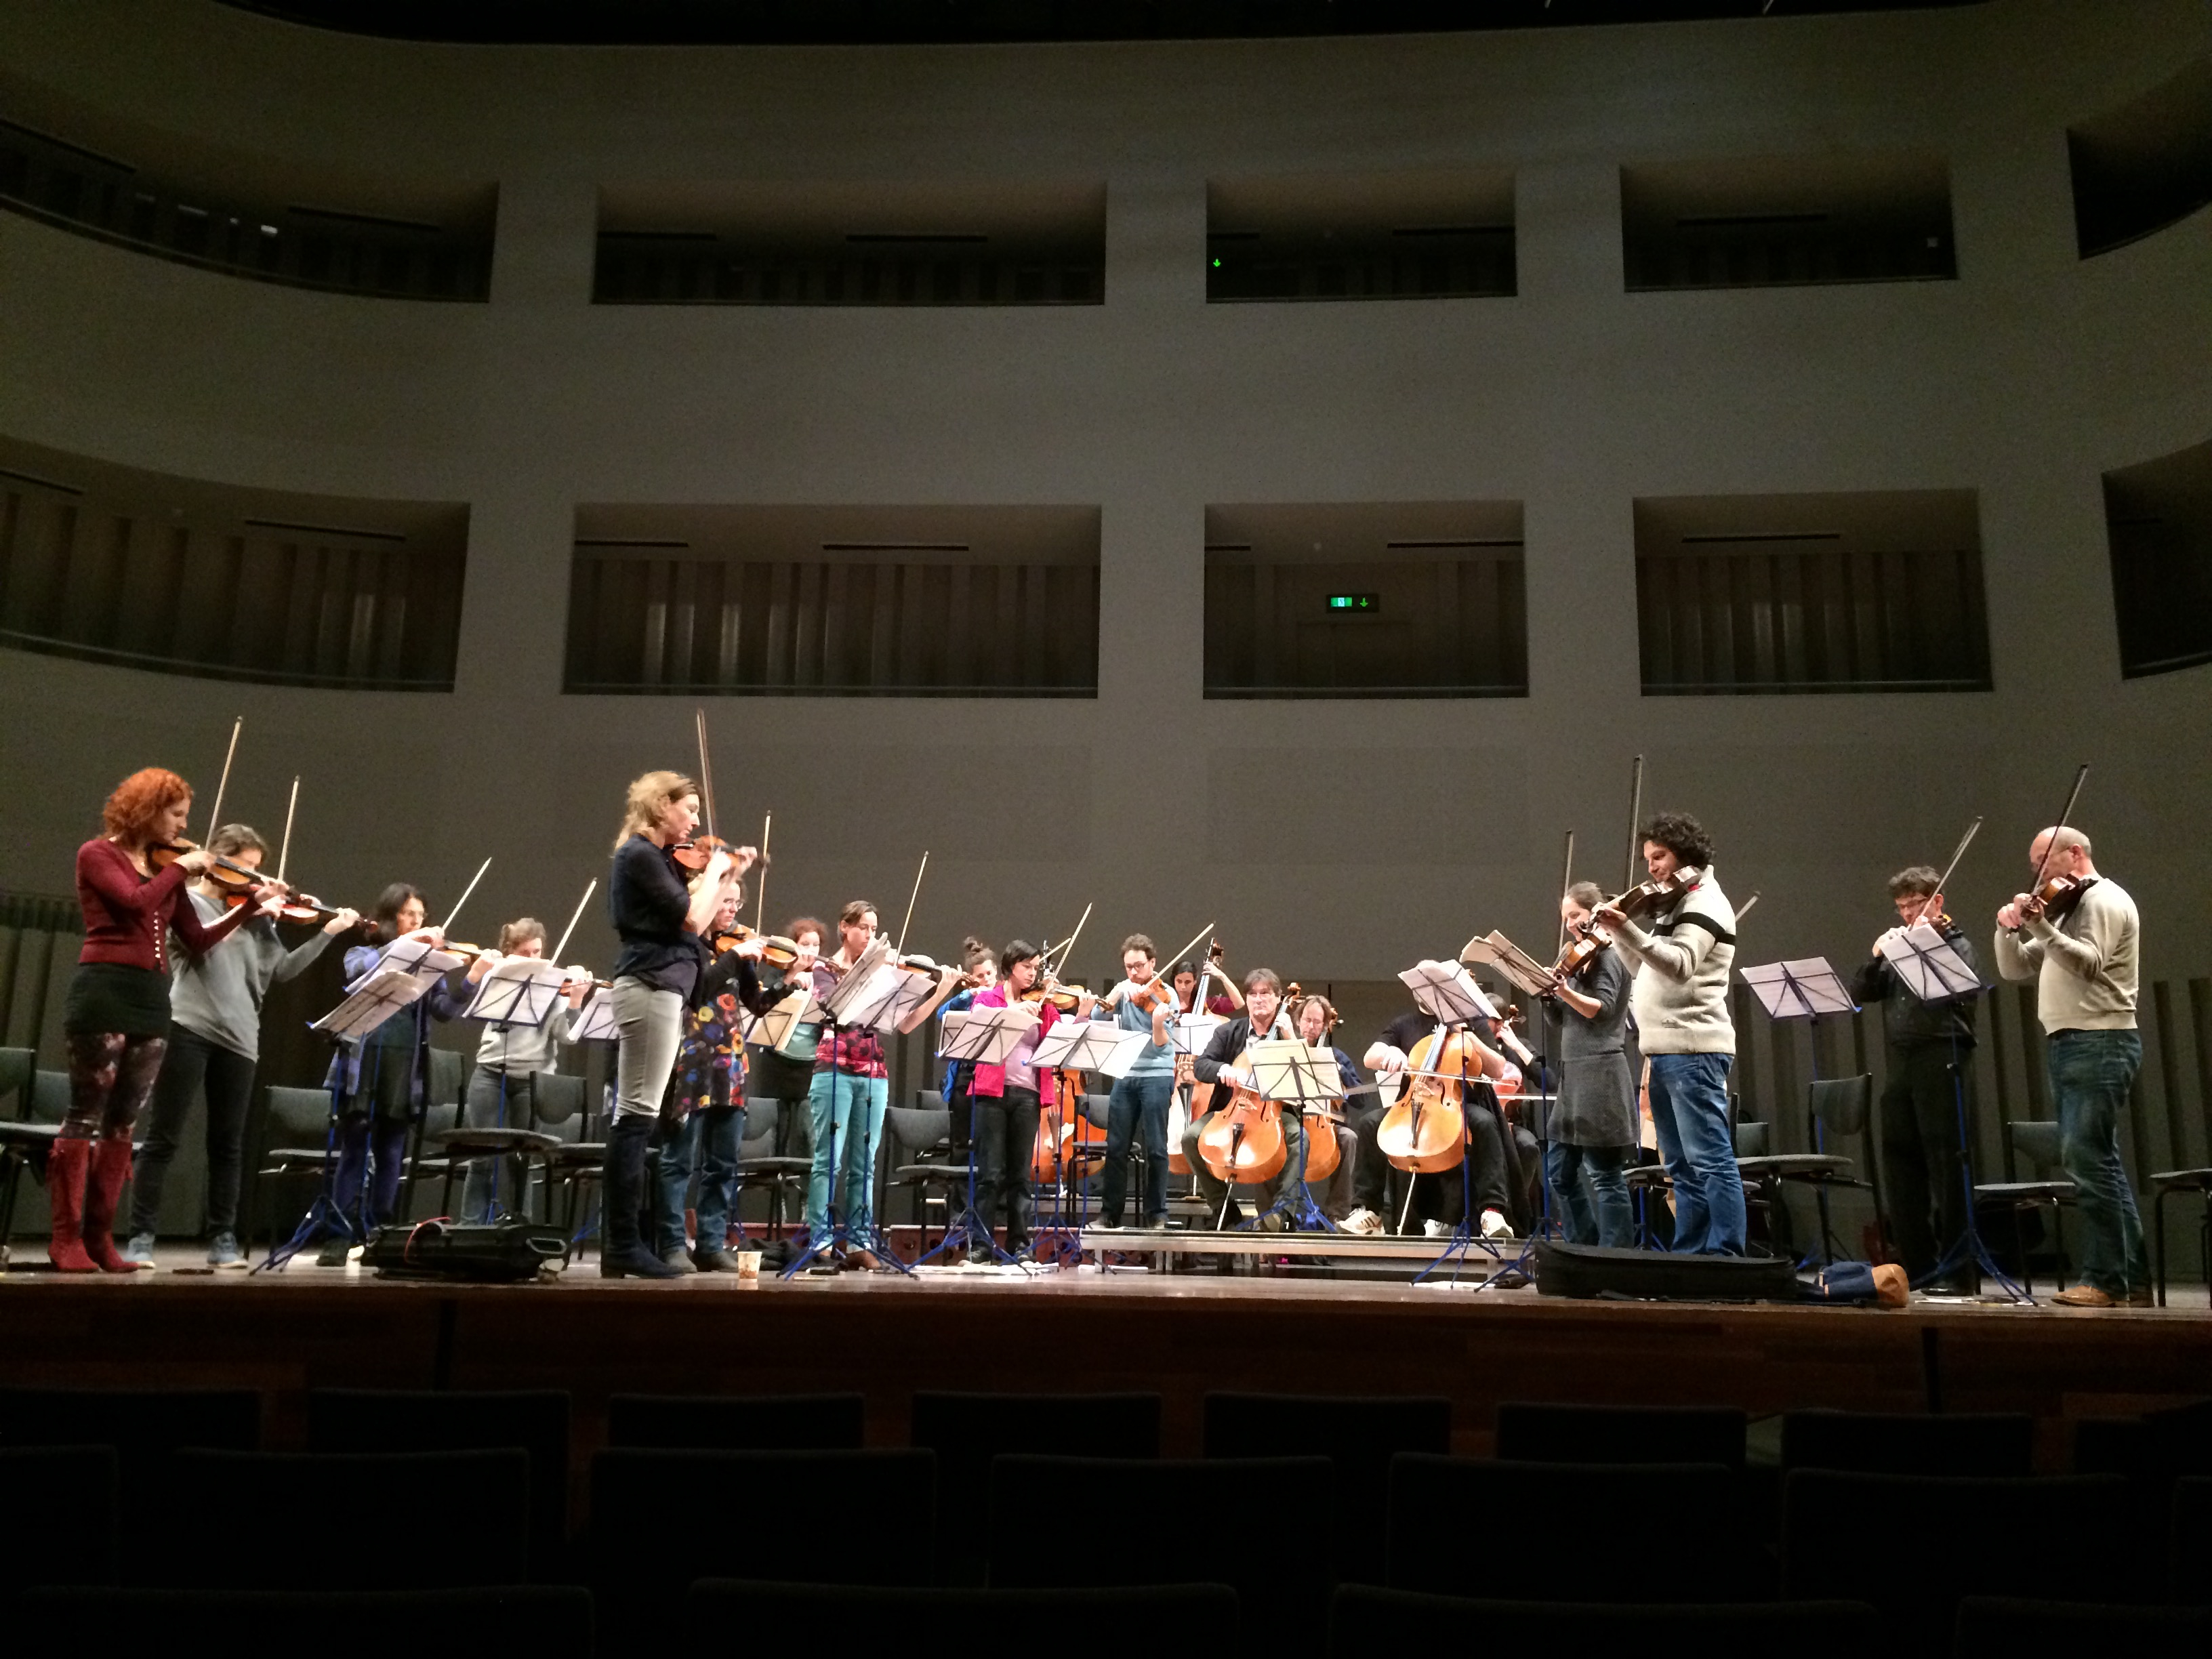 Stage rehearsal of Lichtende Drift by Rozalie Hirs, performed by Amsterdam Sinfonietta, at Concetrtzaal Tilburg, The Netherlands, on 26 November 2014